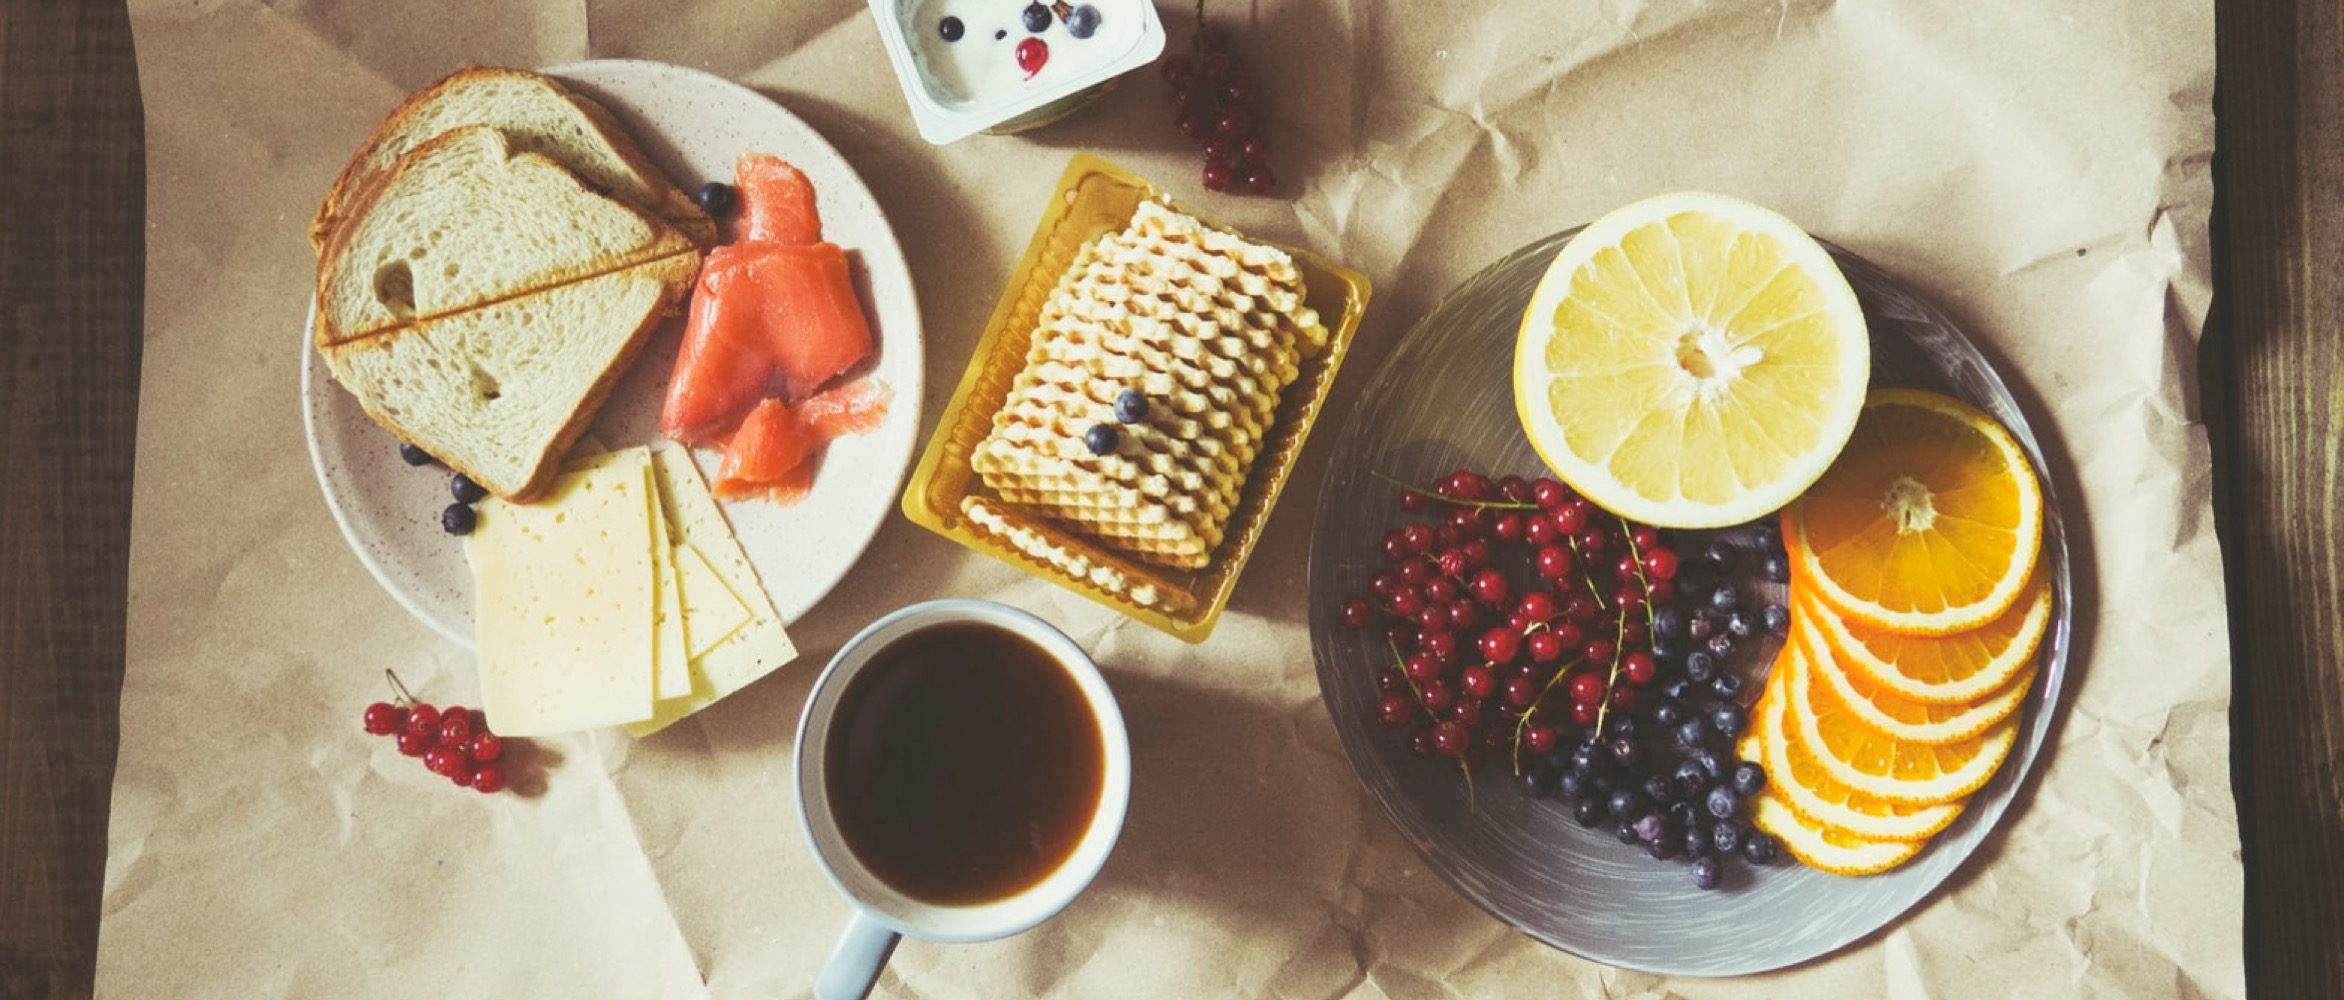 Breakfast with specialty coffee